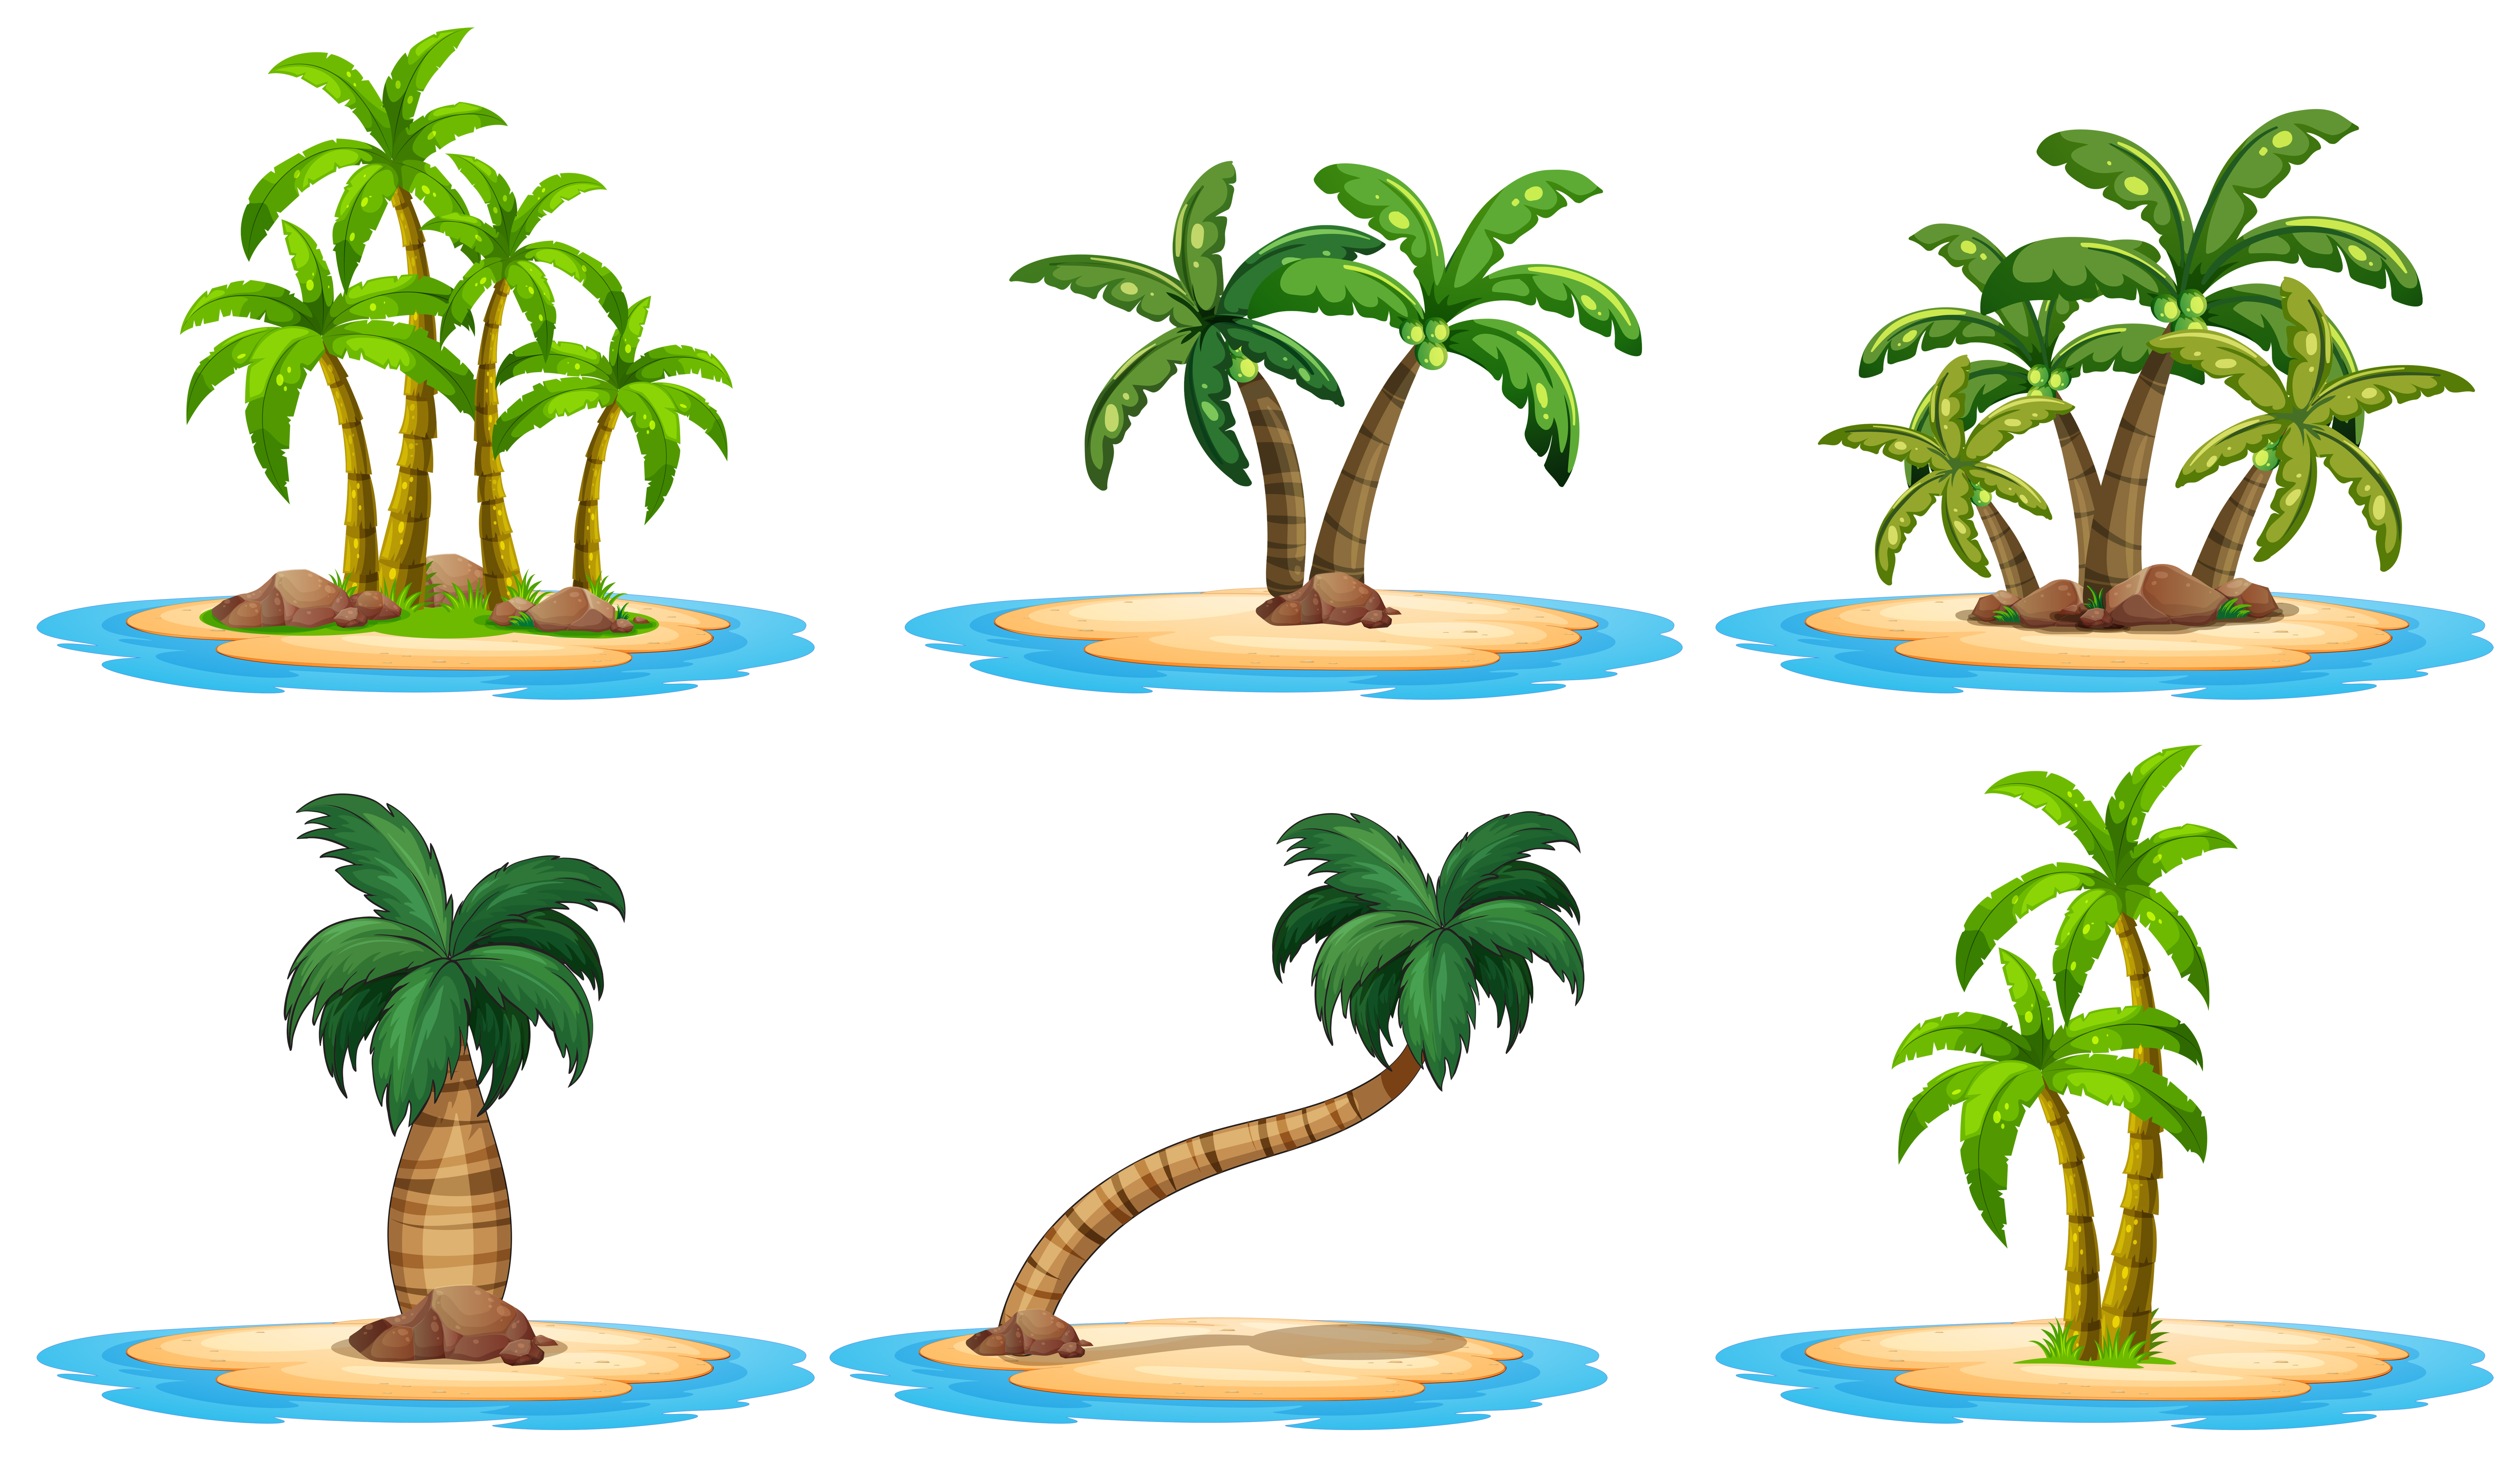 Islands and palm tree - Download Free Vectors, Clipart ...